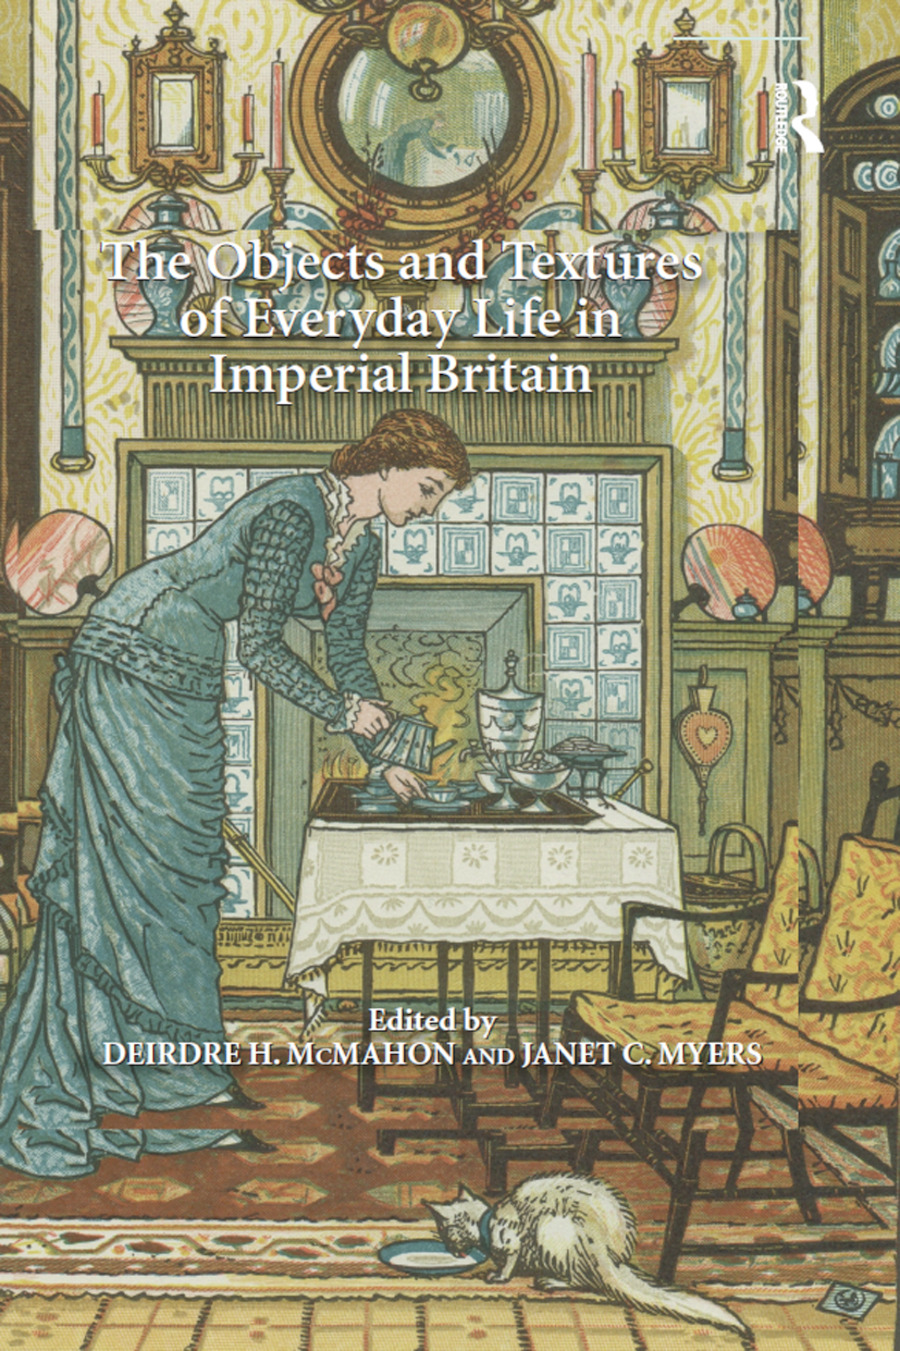 The Objects and Textures of Everyday Life in Imperial Britain